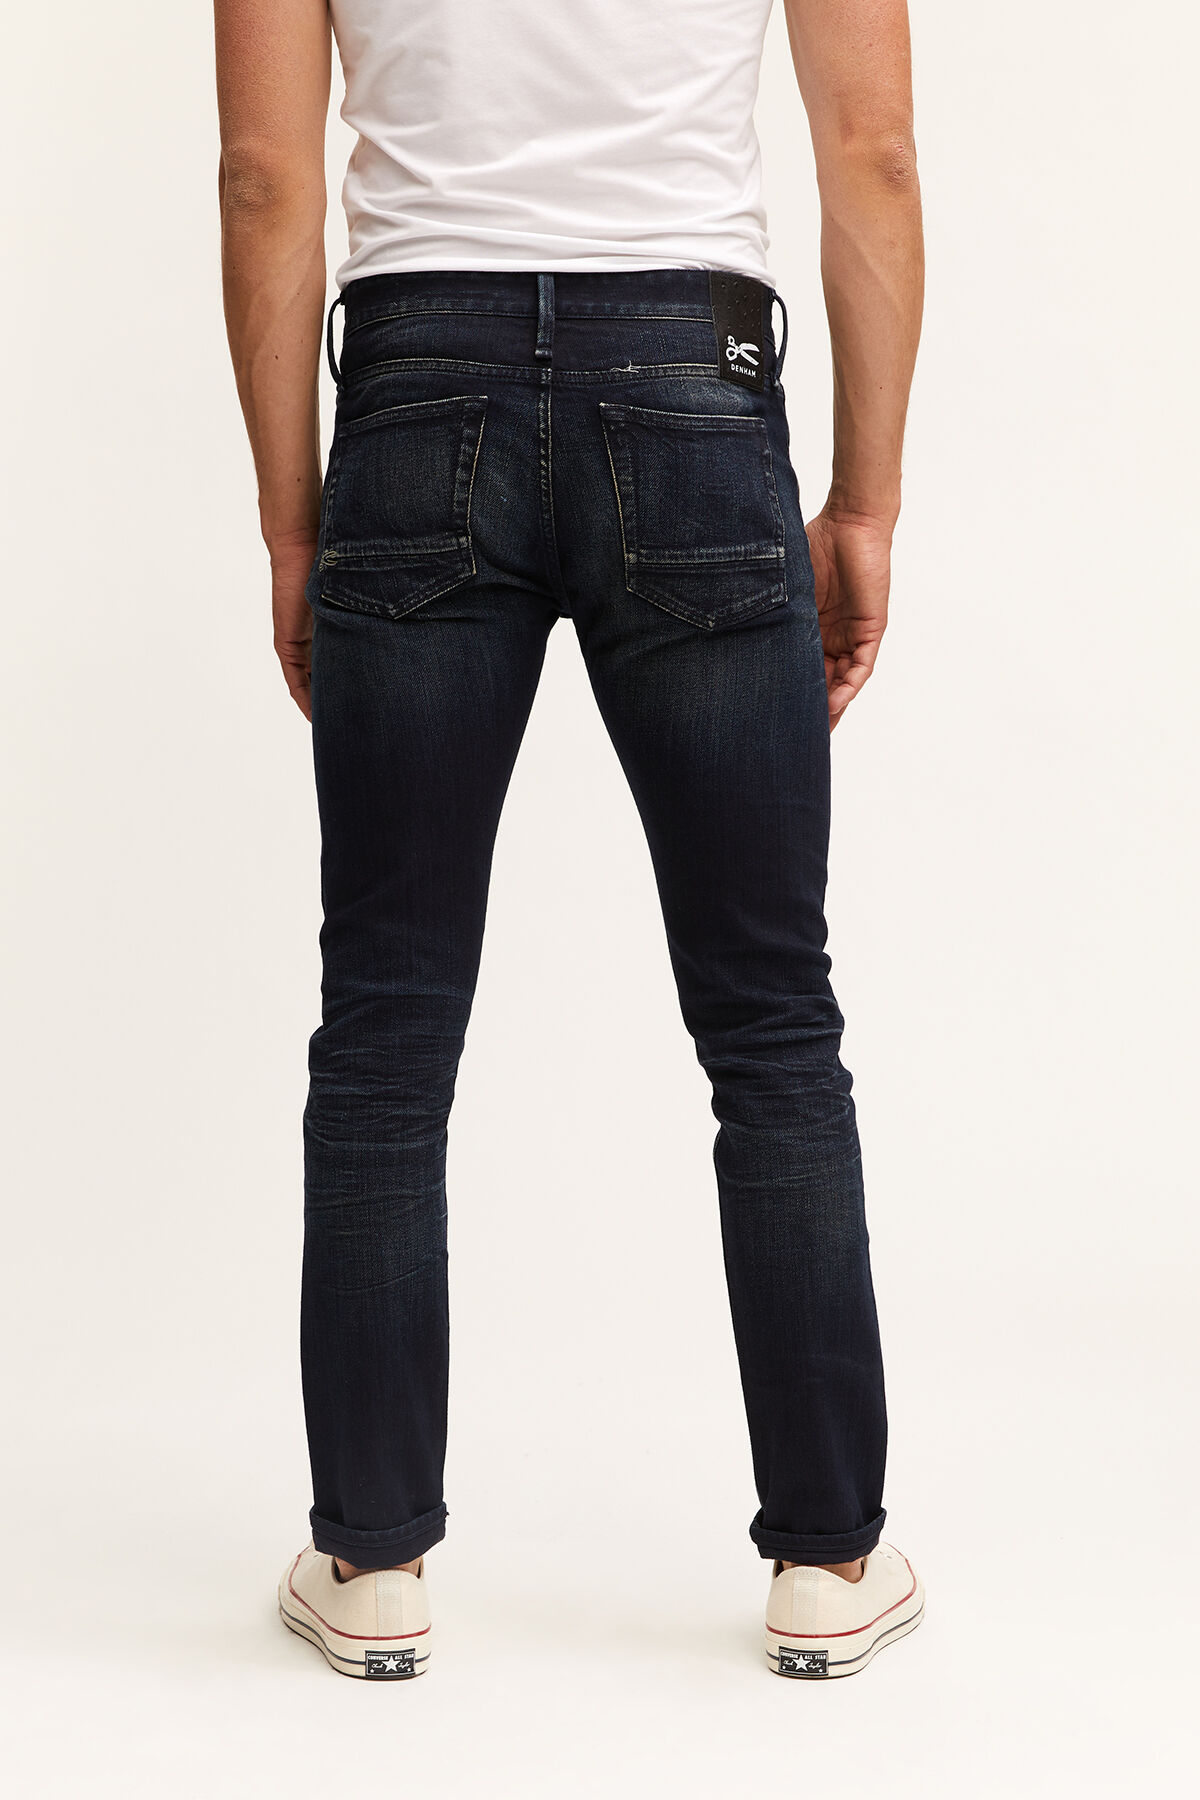 BOLT Made in Italy, Aged Blue-Black Denim - Skinny Fit